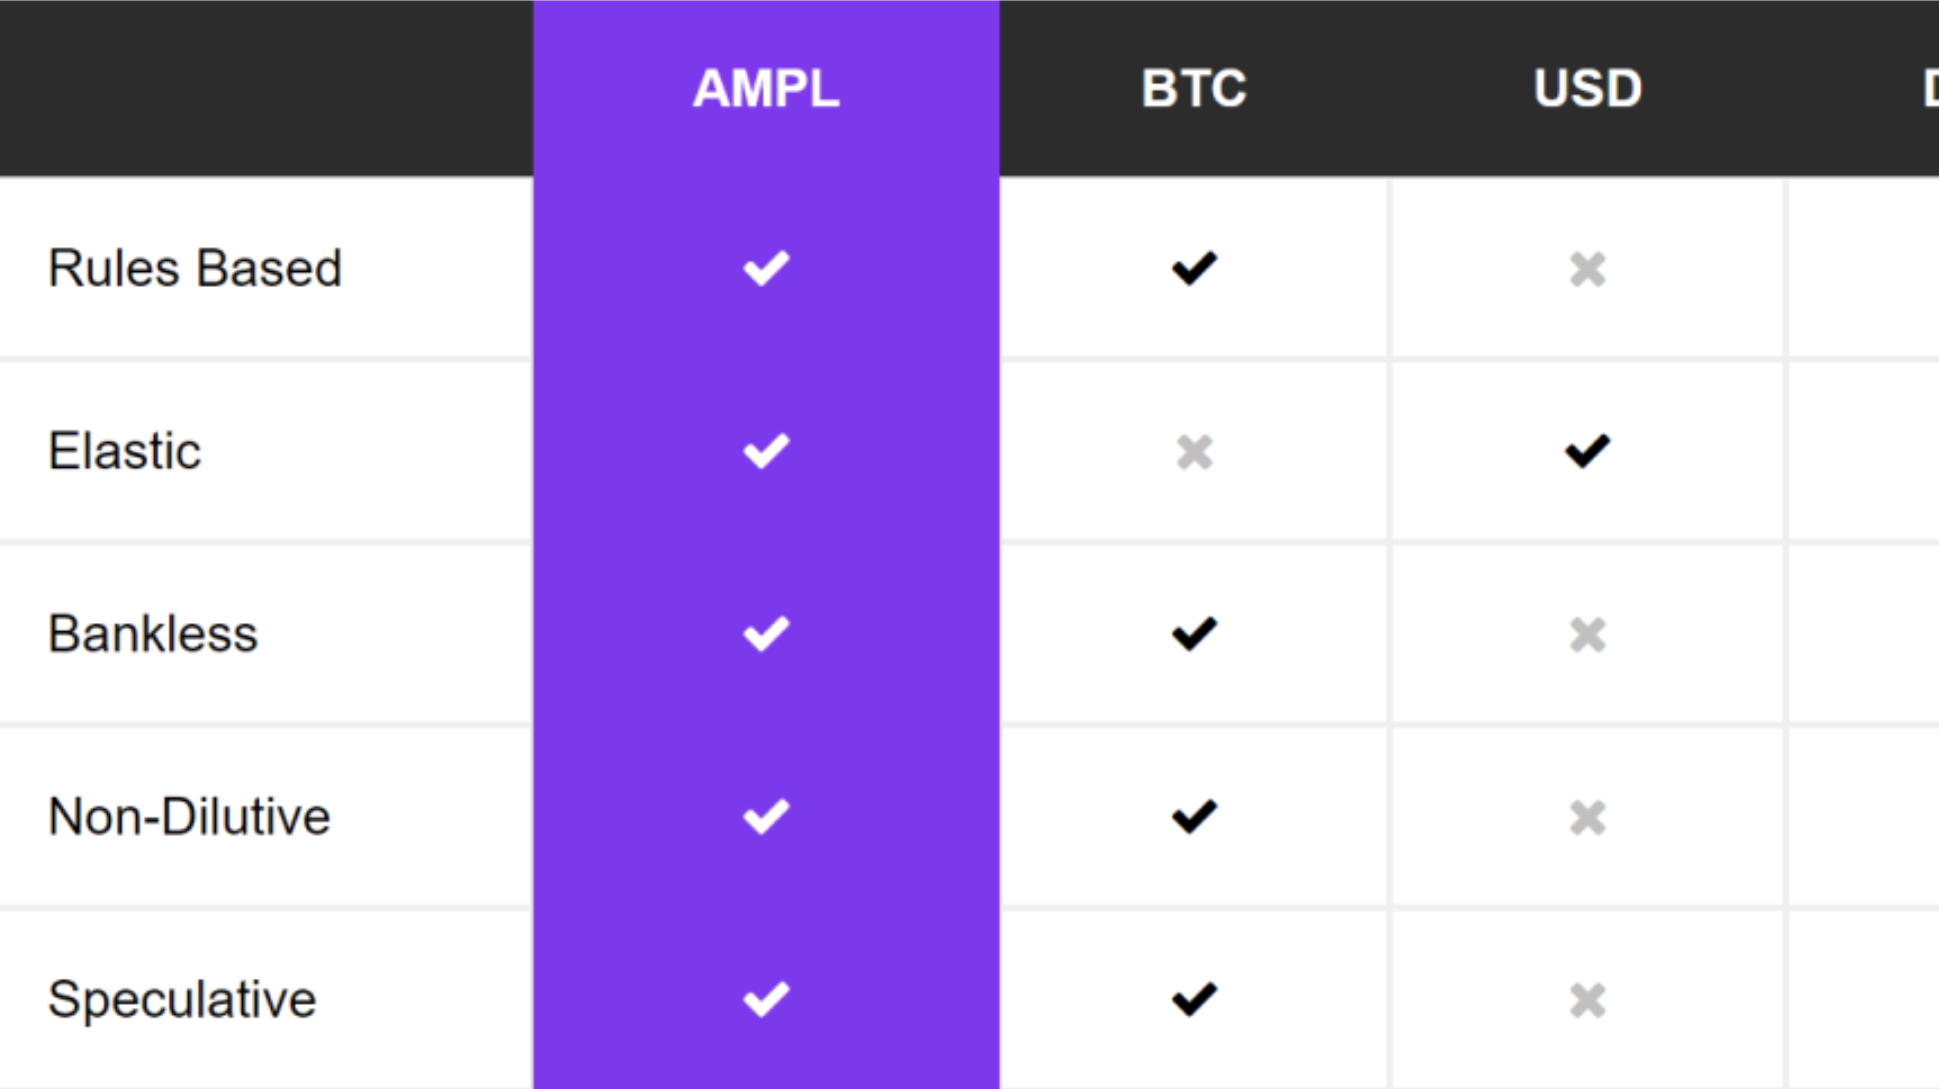 What's the Problem with $BTC, USD or $DAI that $AMPL solves?